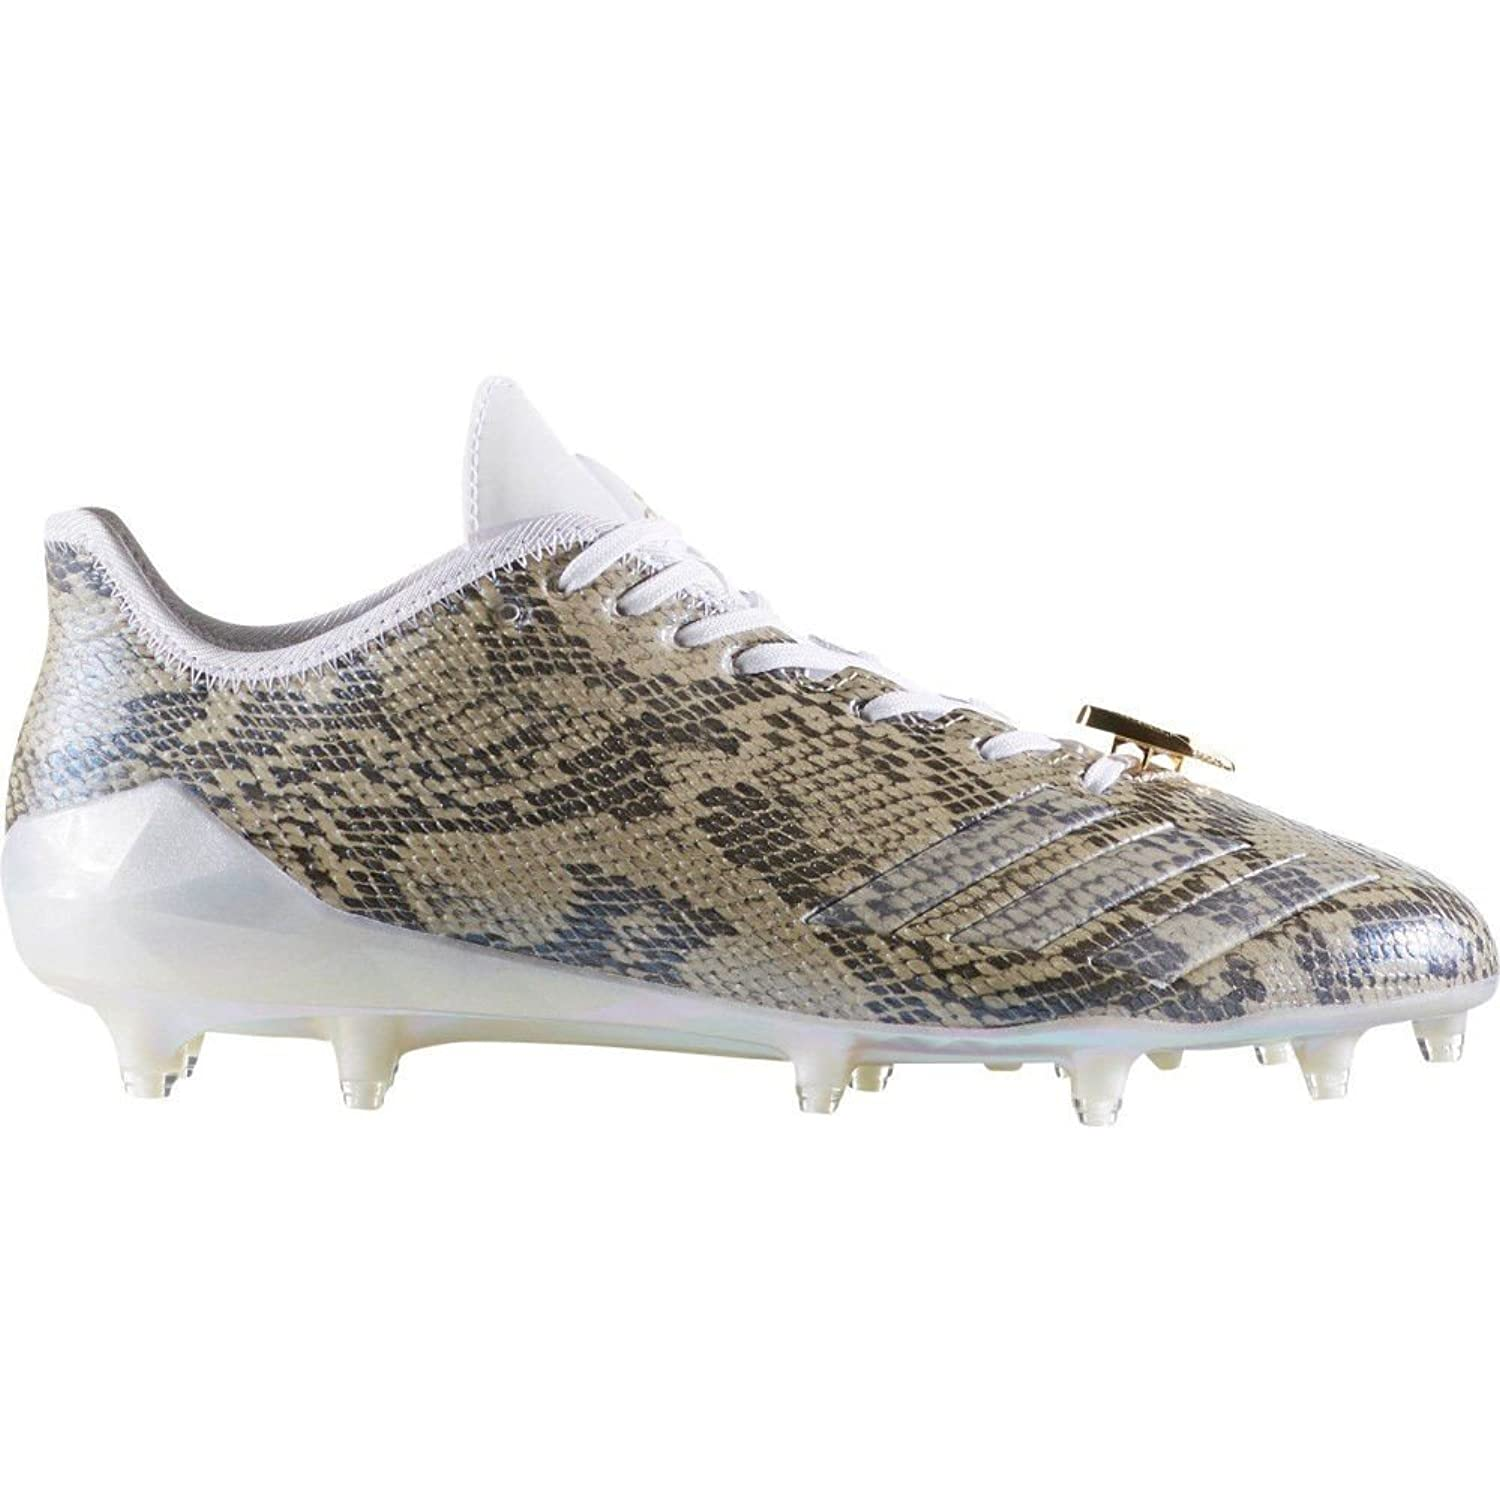 (アディダス) adidas メンズ サッカー シューズ靴 adidas adizero 5-Star 6.0 Uncaged Football Cleats [並行輸入品] B077XYXV5K 15.0-Medium